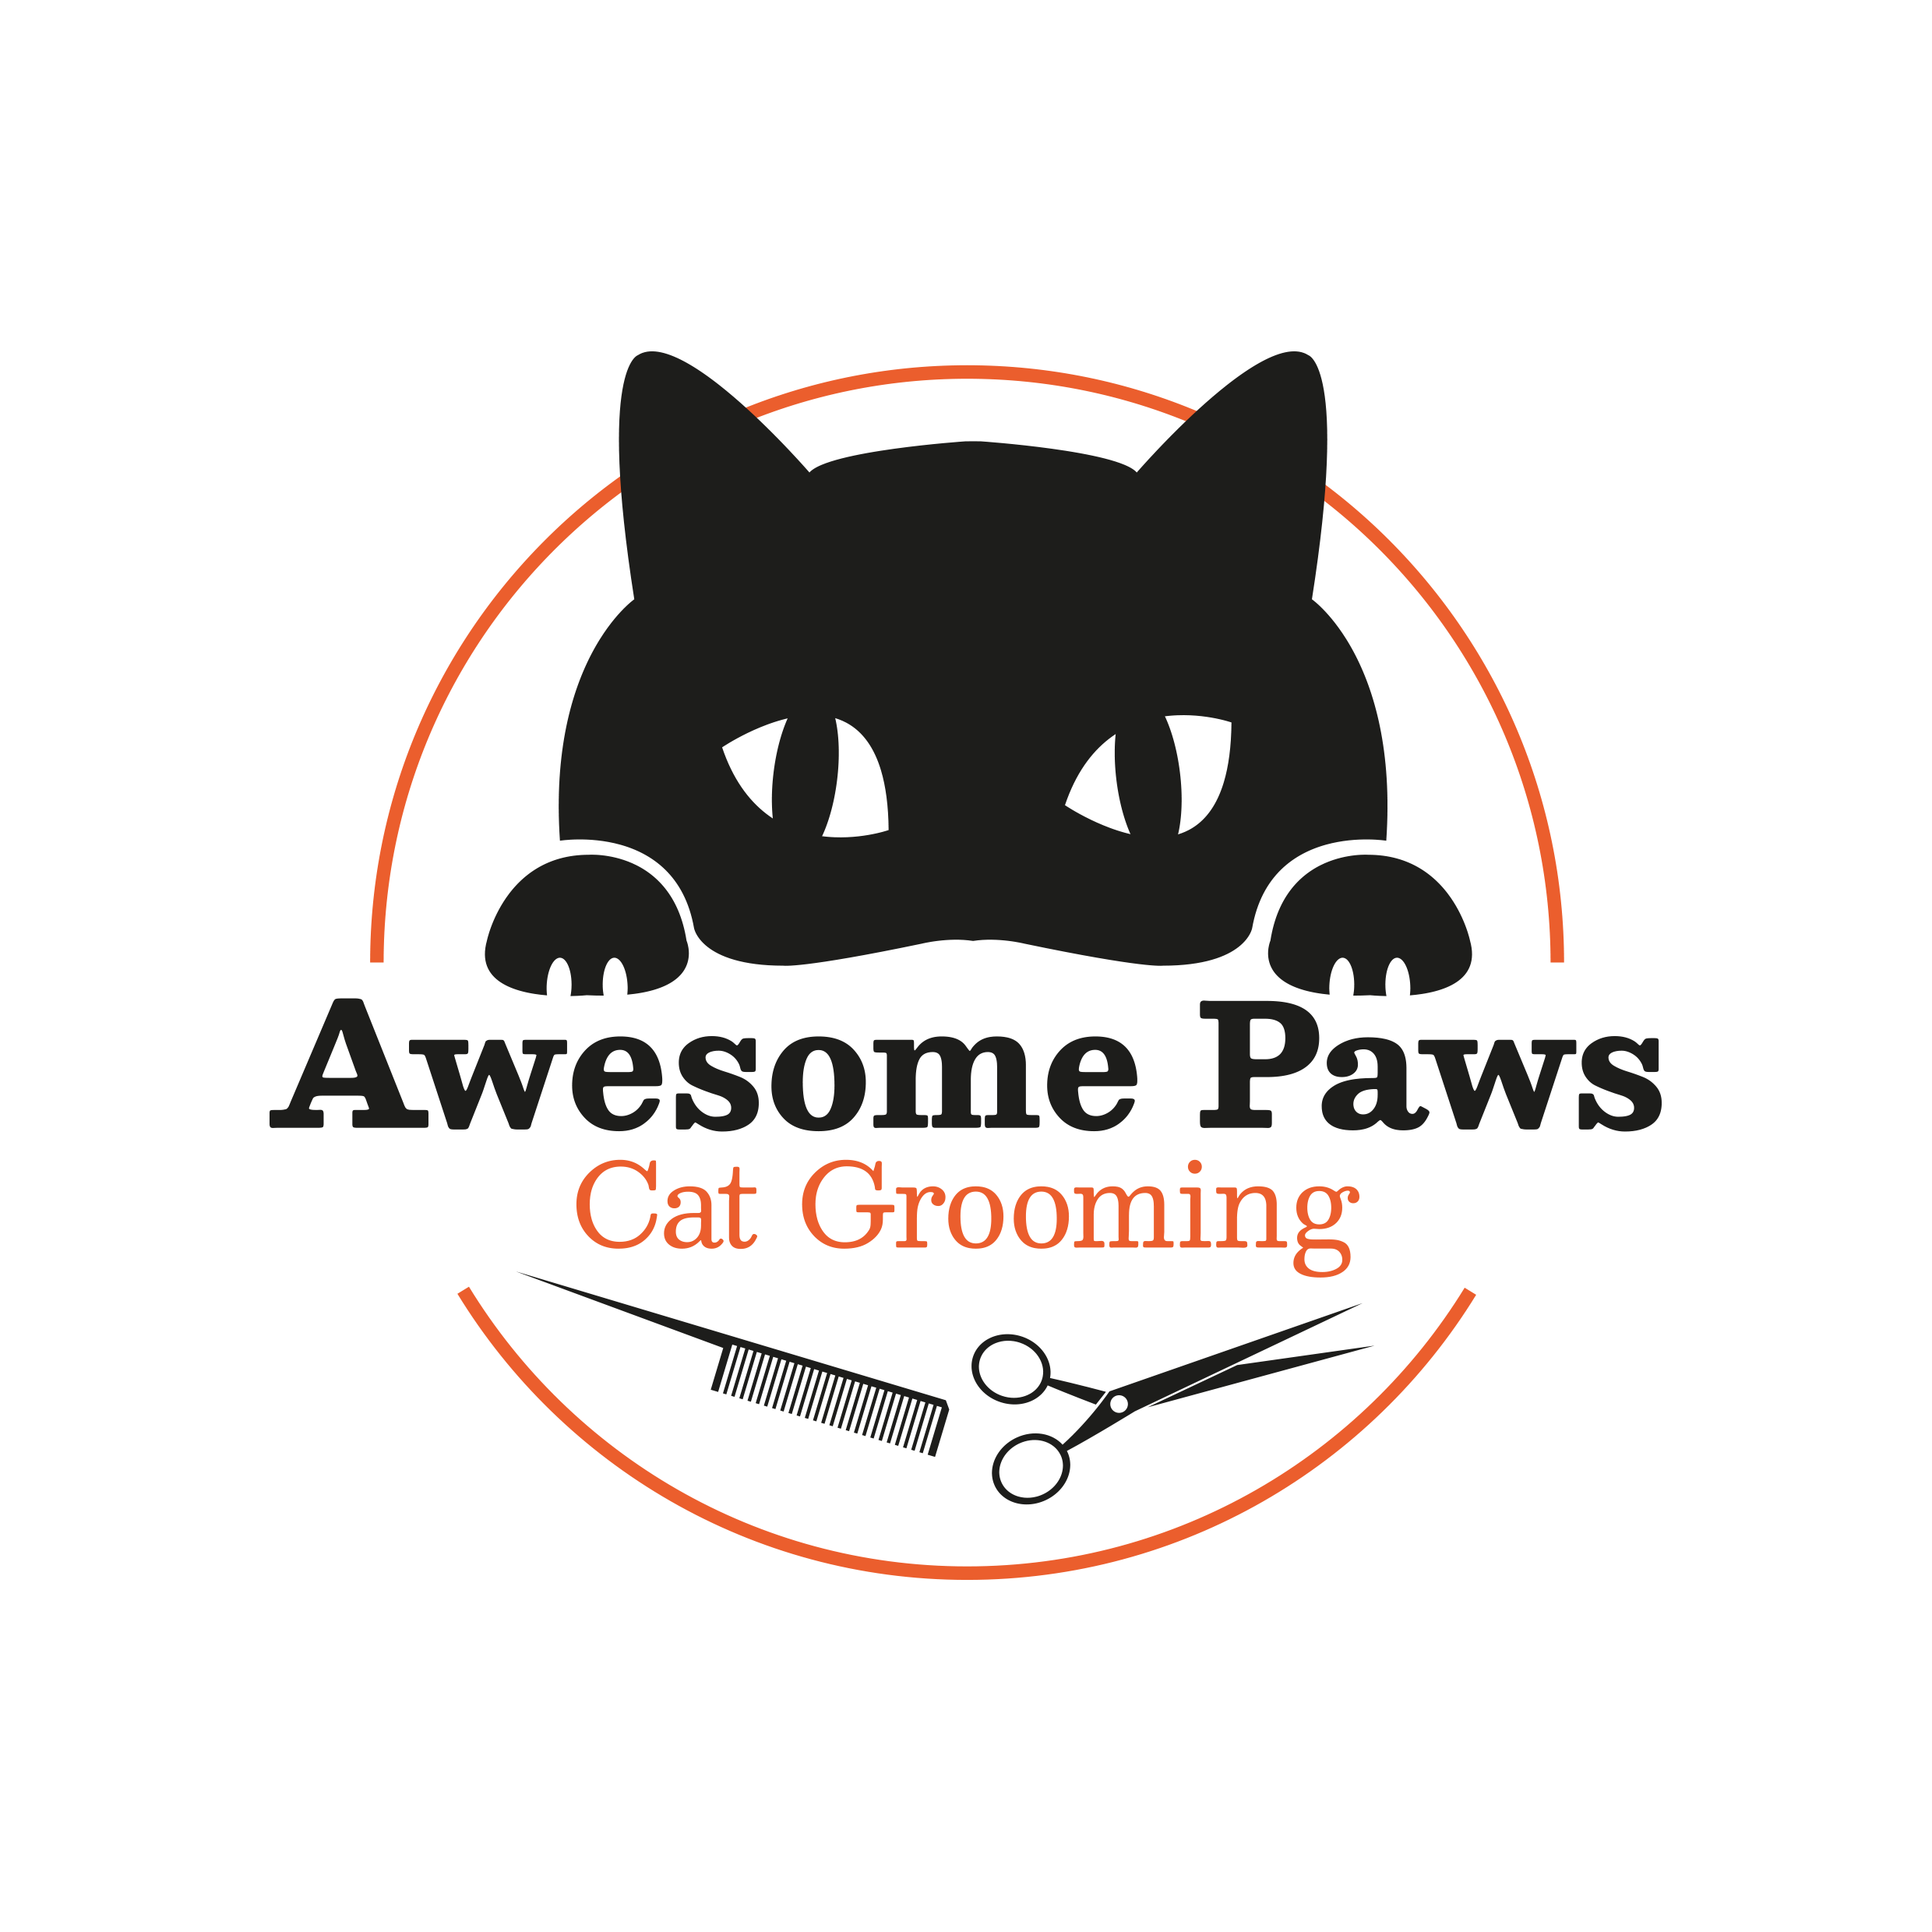 Awesome Paws Cat Grooming